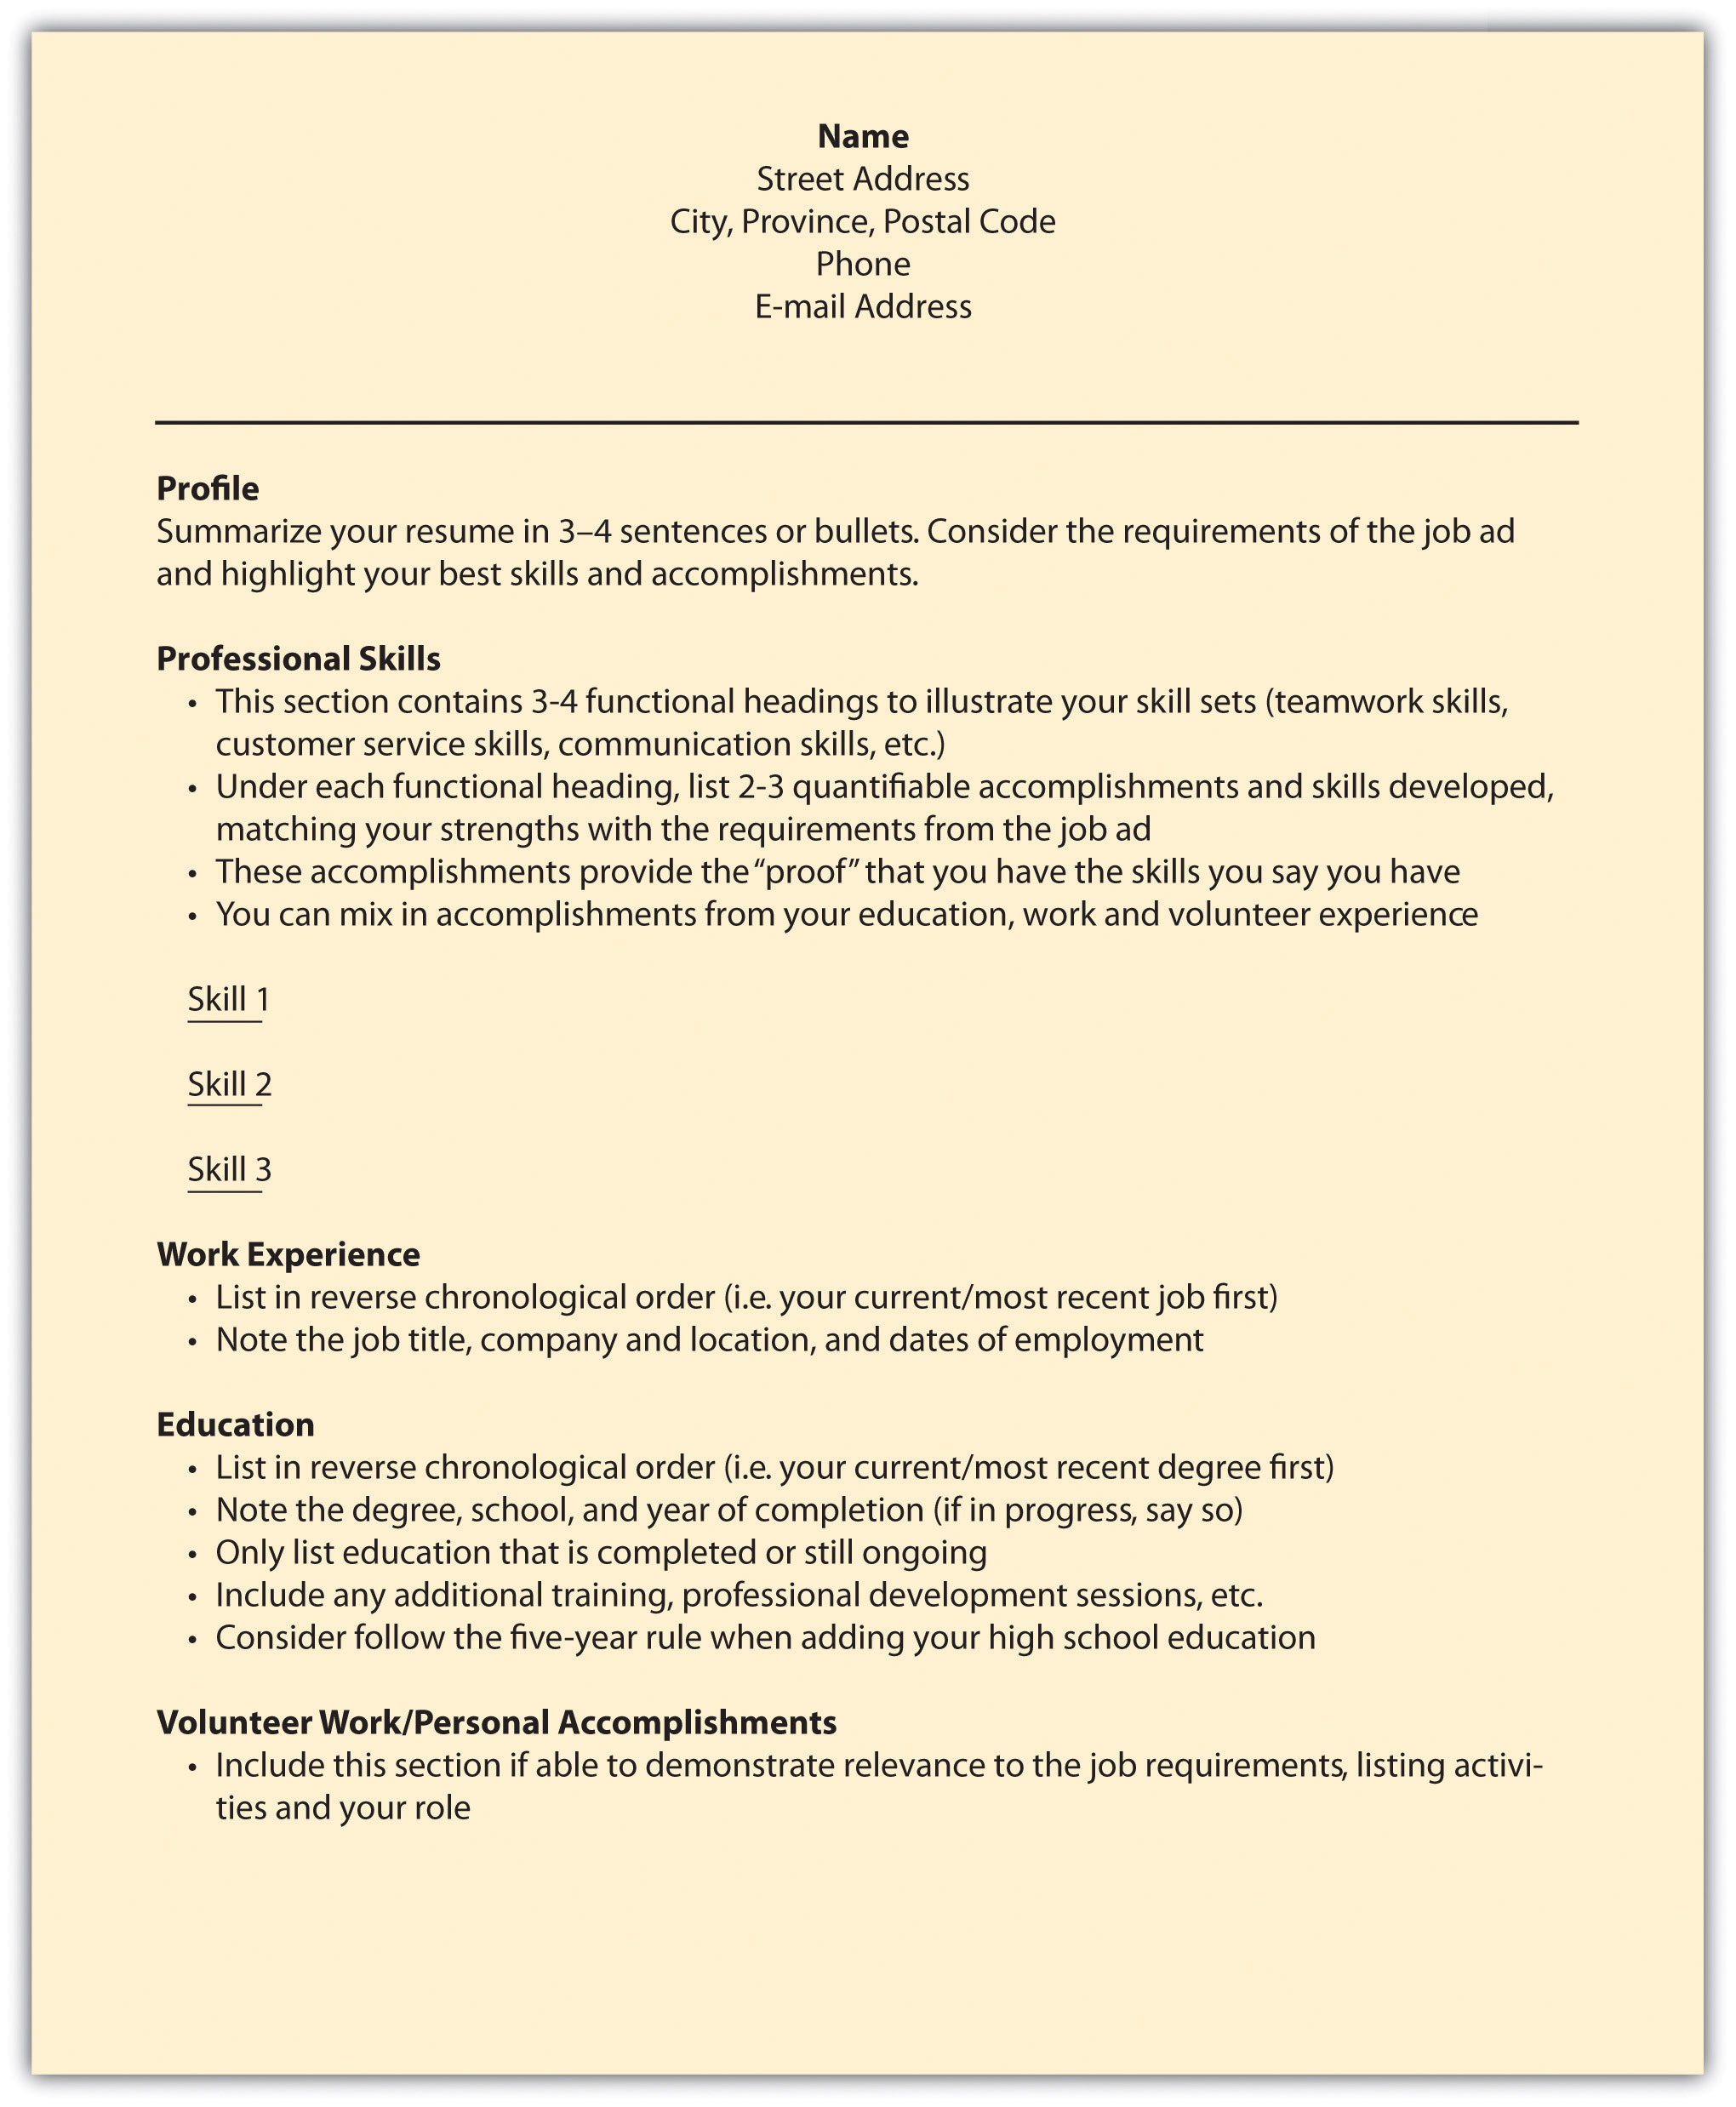 Printing, Packaging And Delivery  Communication Skills On Resume